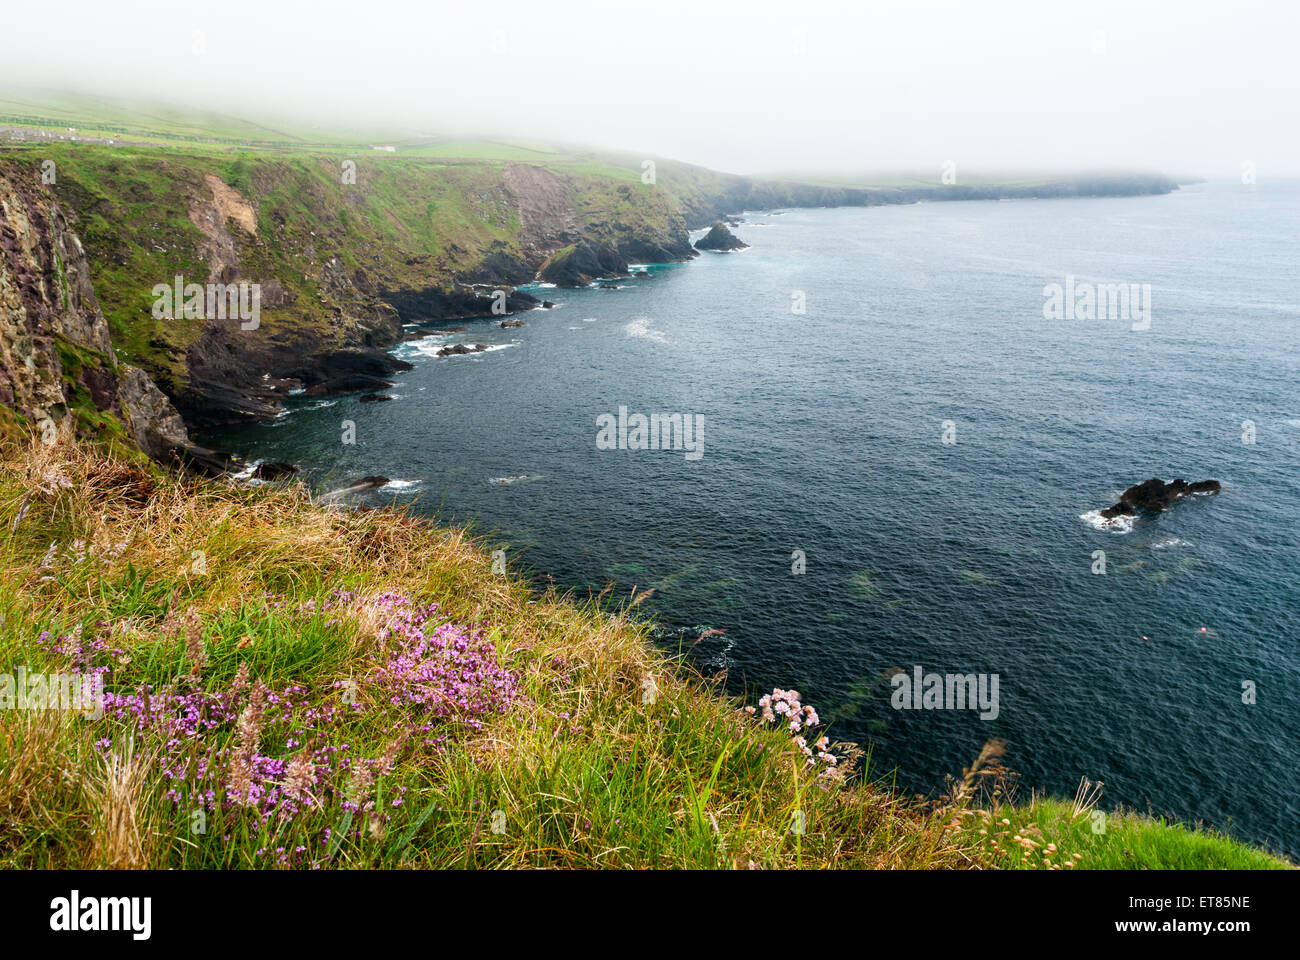 Low level clouds over Slea Head in Dingle, Ireland - Stock Image